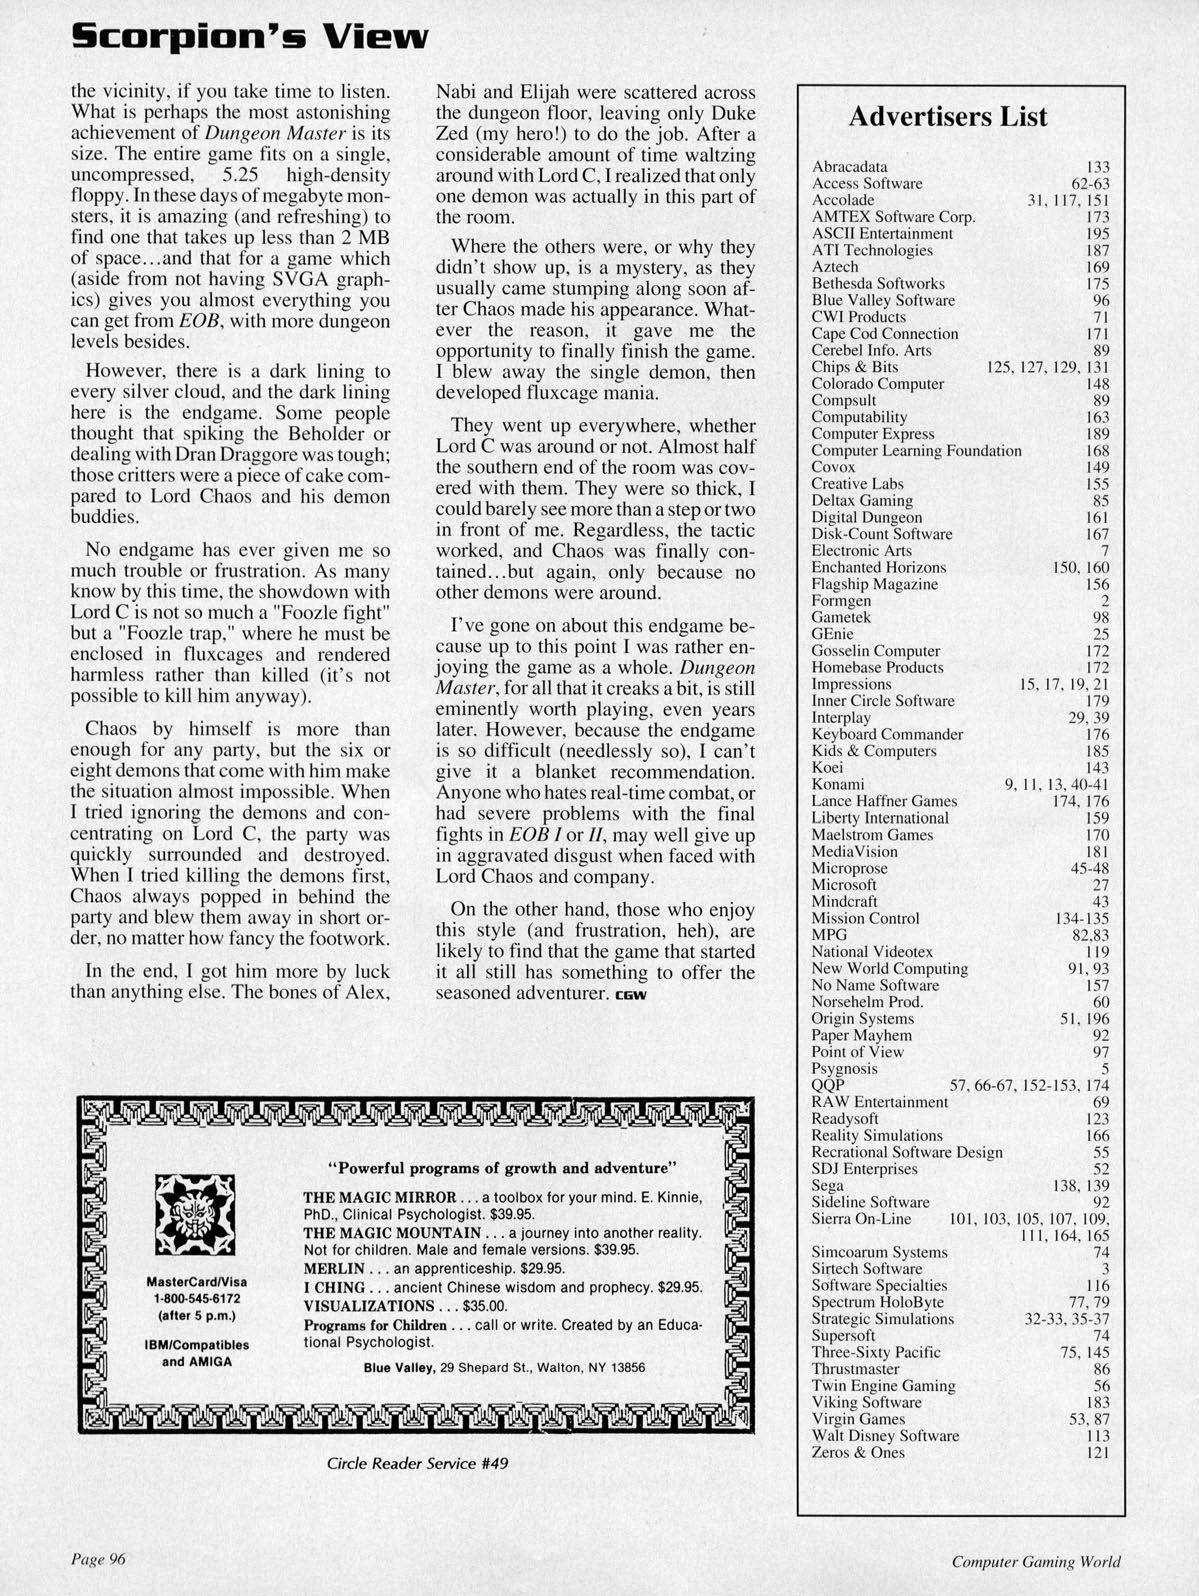 Dungeon Master for PC Review published in American magazine 'Computer Gaming World', Issue #100 November 1992, Page 96